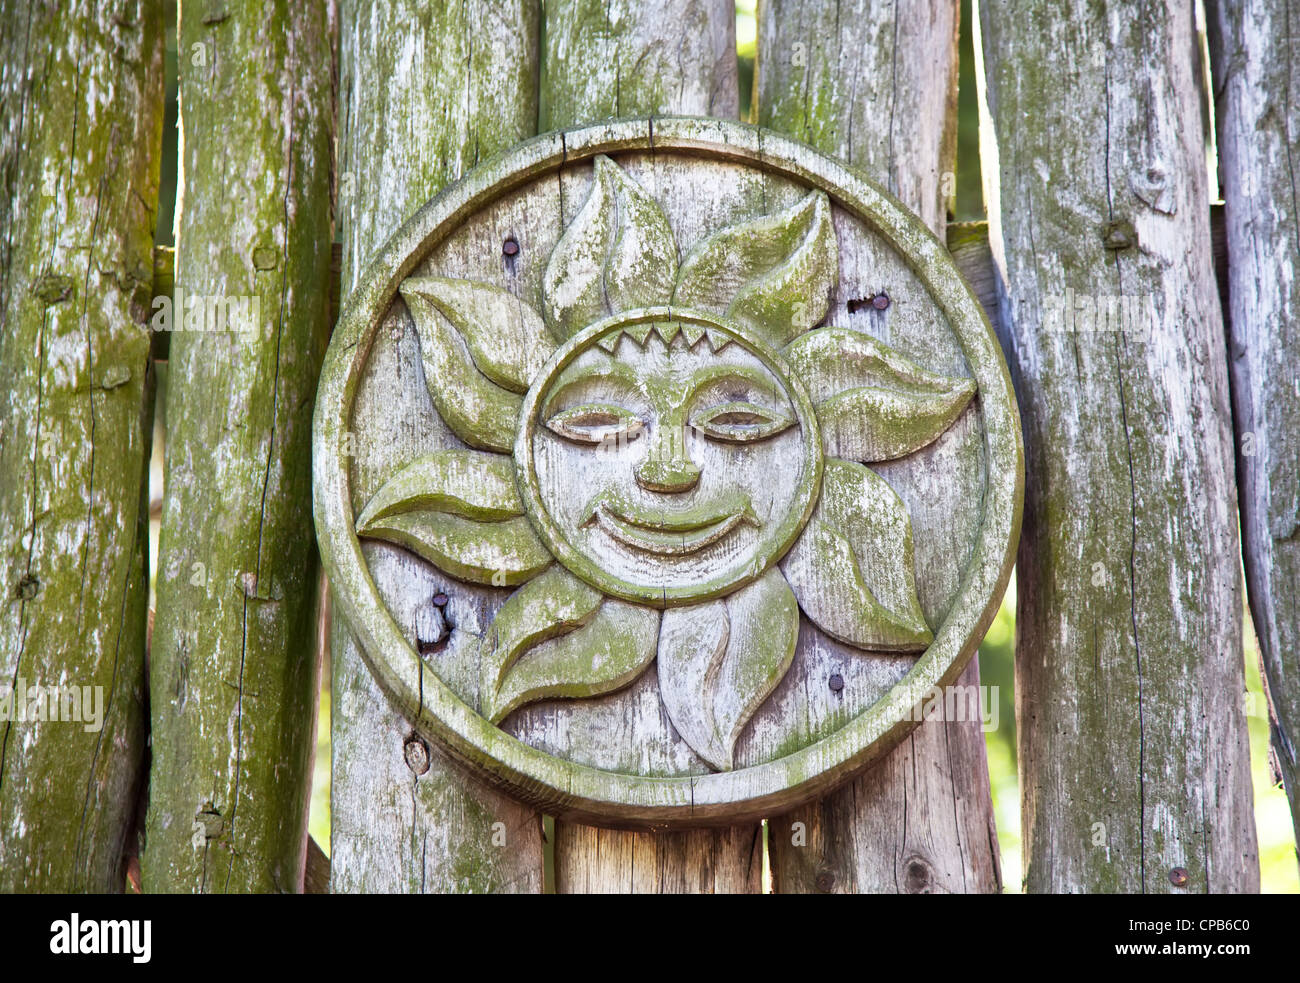 Pagan wooden sun sign on a log - Stock Image